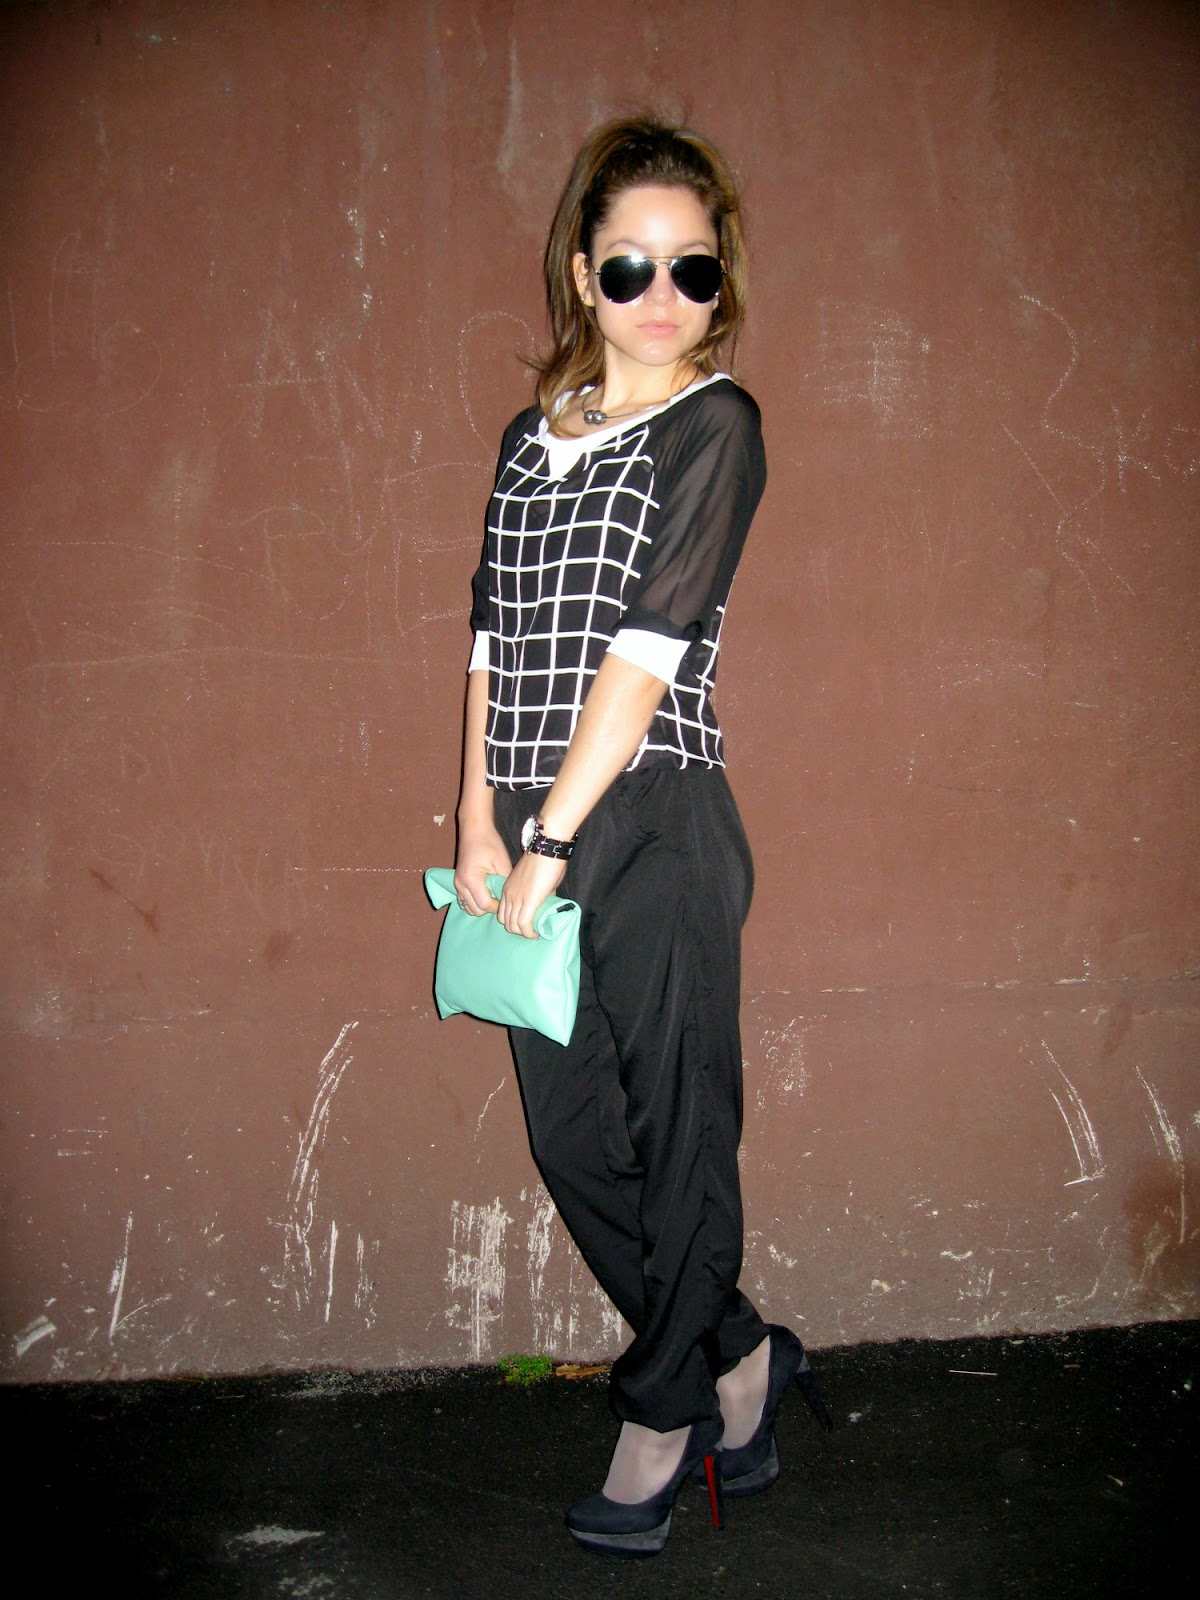 outfit, mint clutch, black pants, grid print top, gingham style check print top, black pumps, all black outfit look